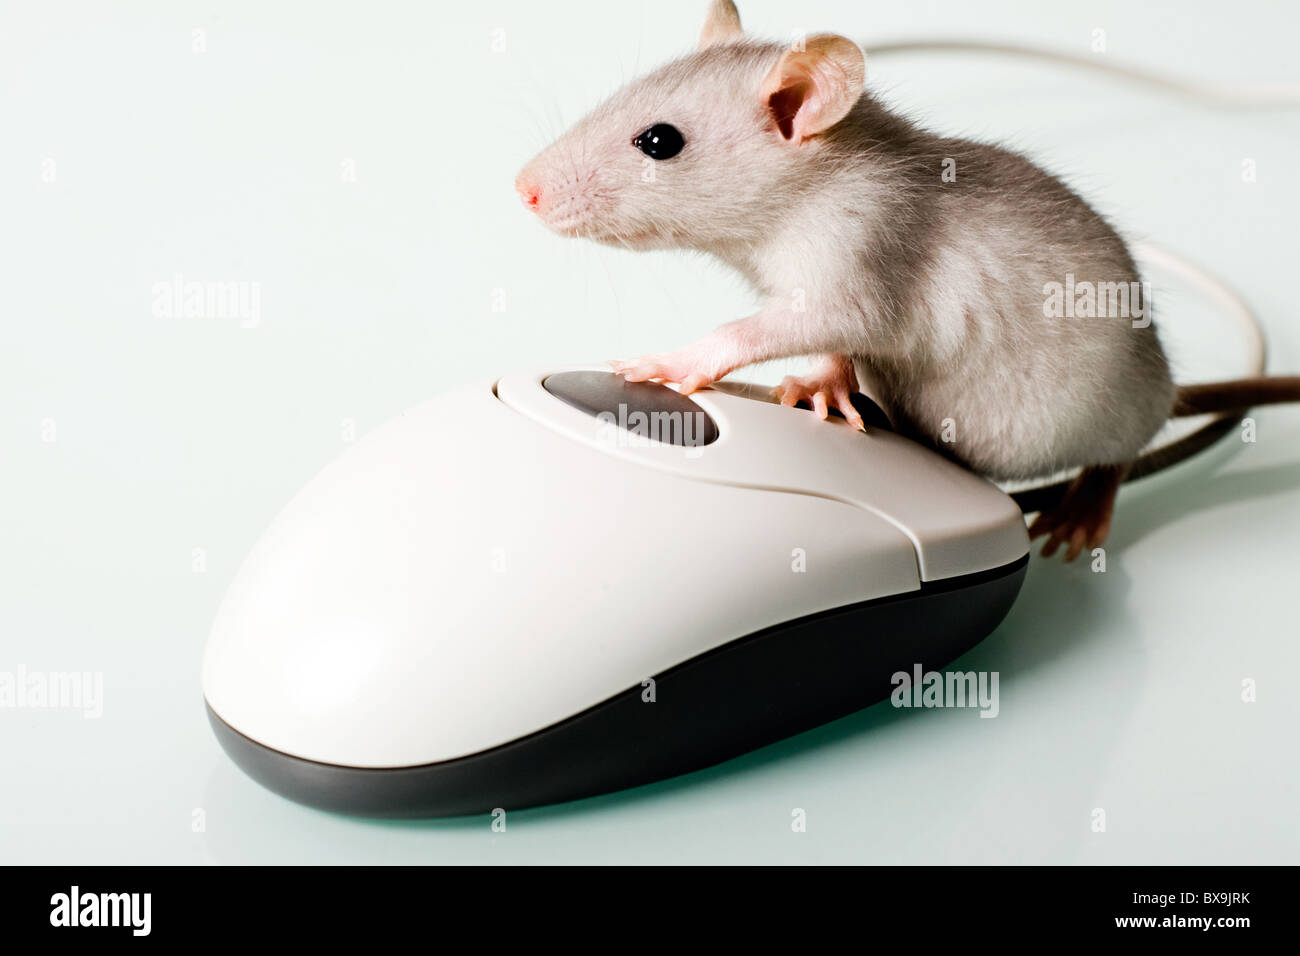 Image of small pet touching to the computer mouse - Stock Image